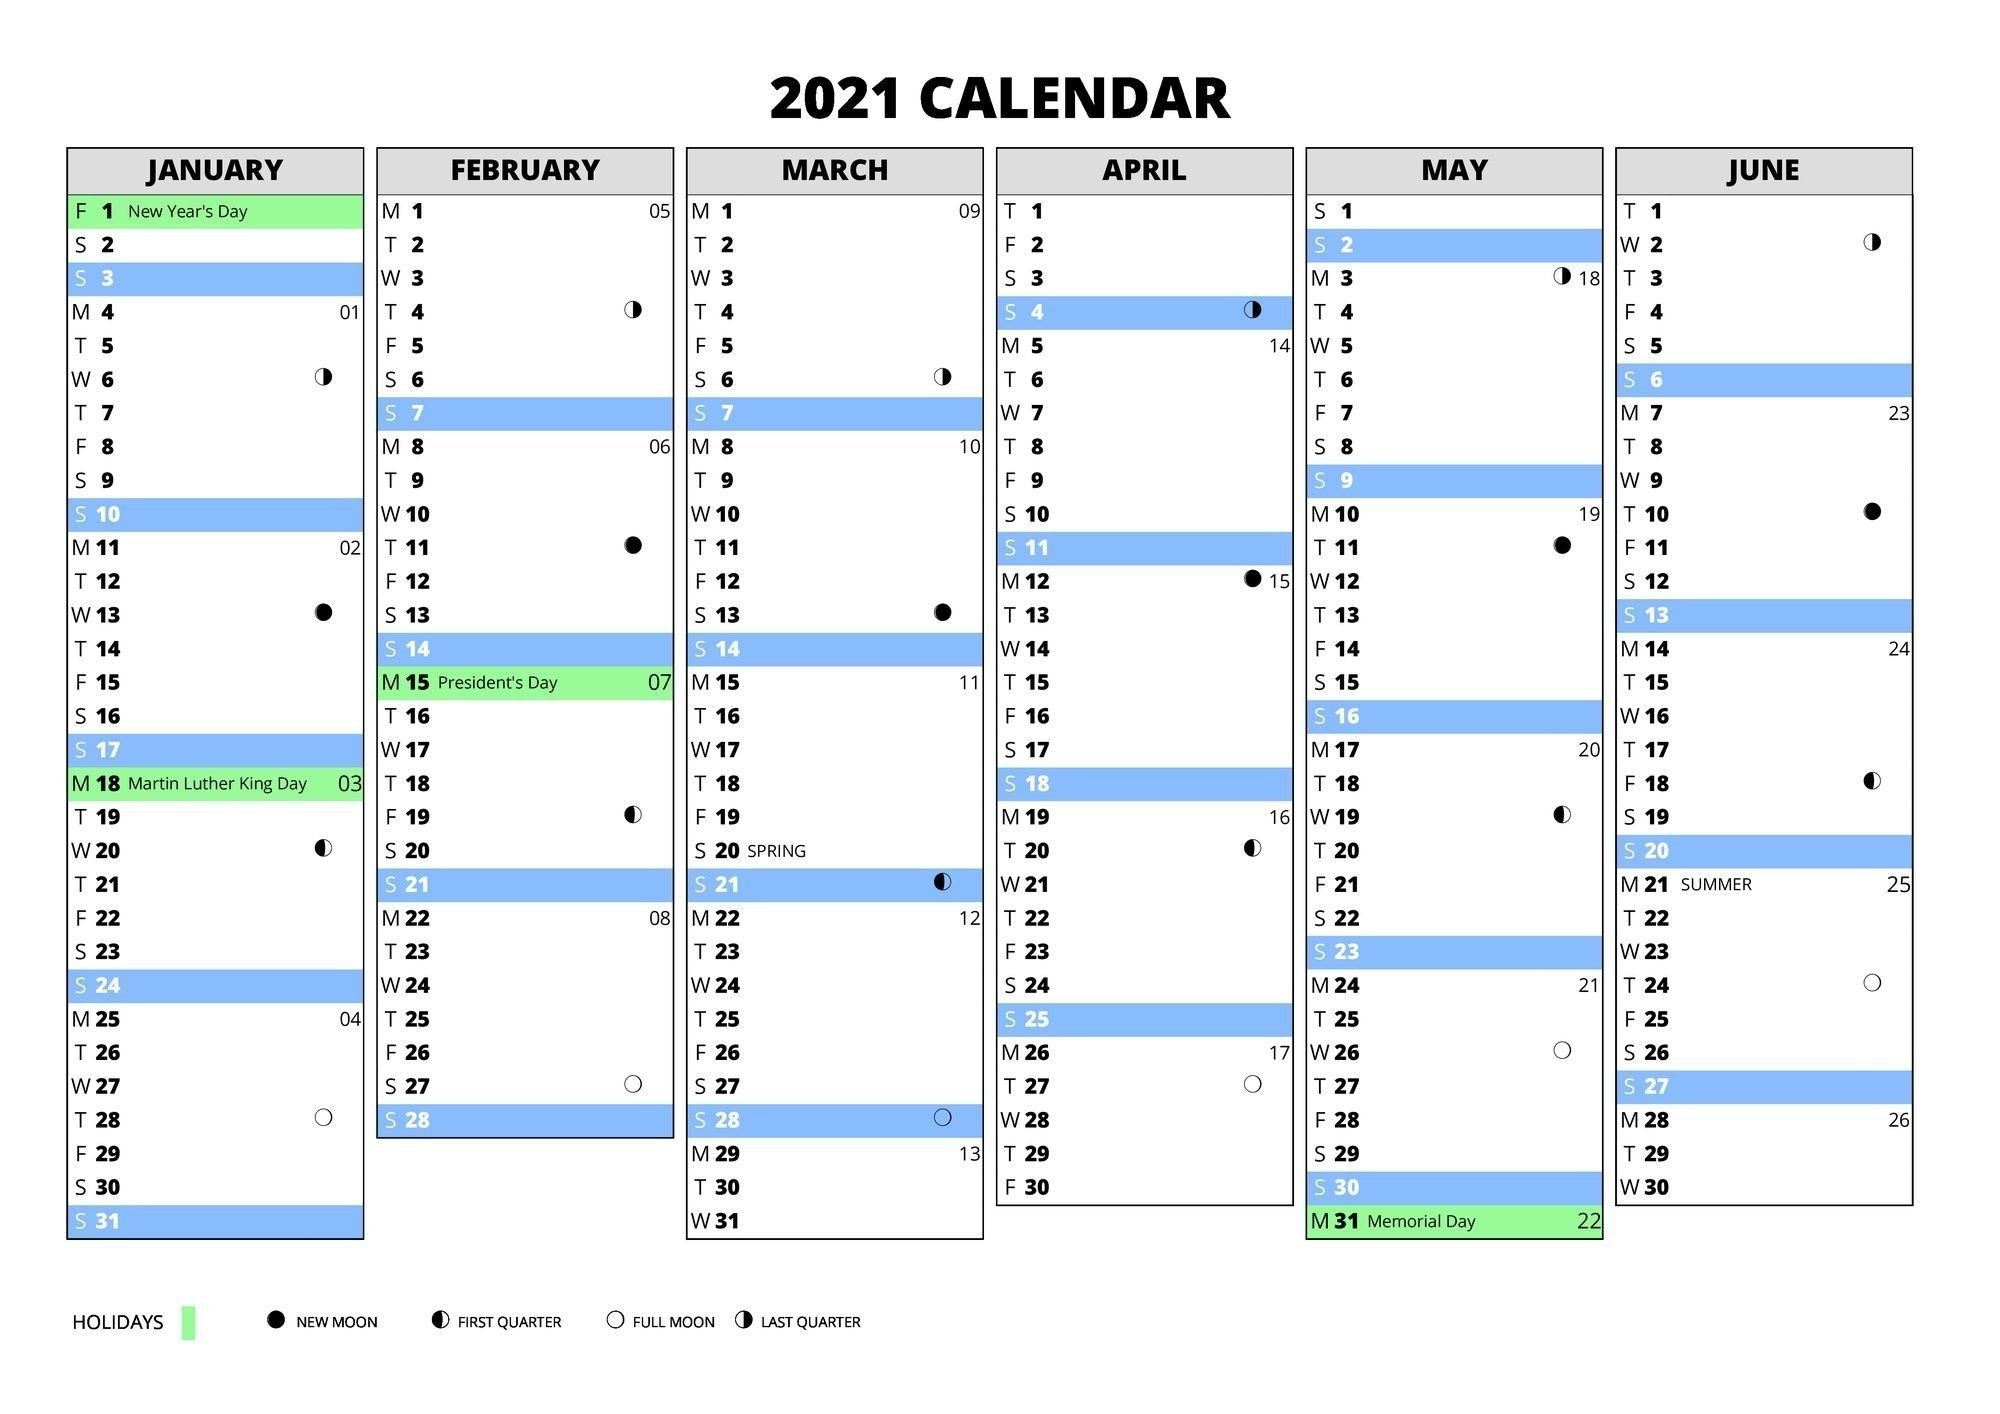 How To Calendar With Number Days 365 In 2020 | Excel Calendar With 365 Days Numbered